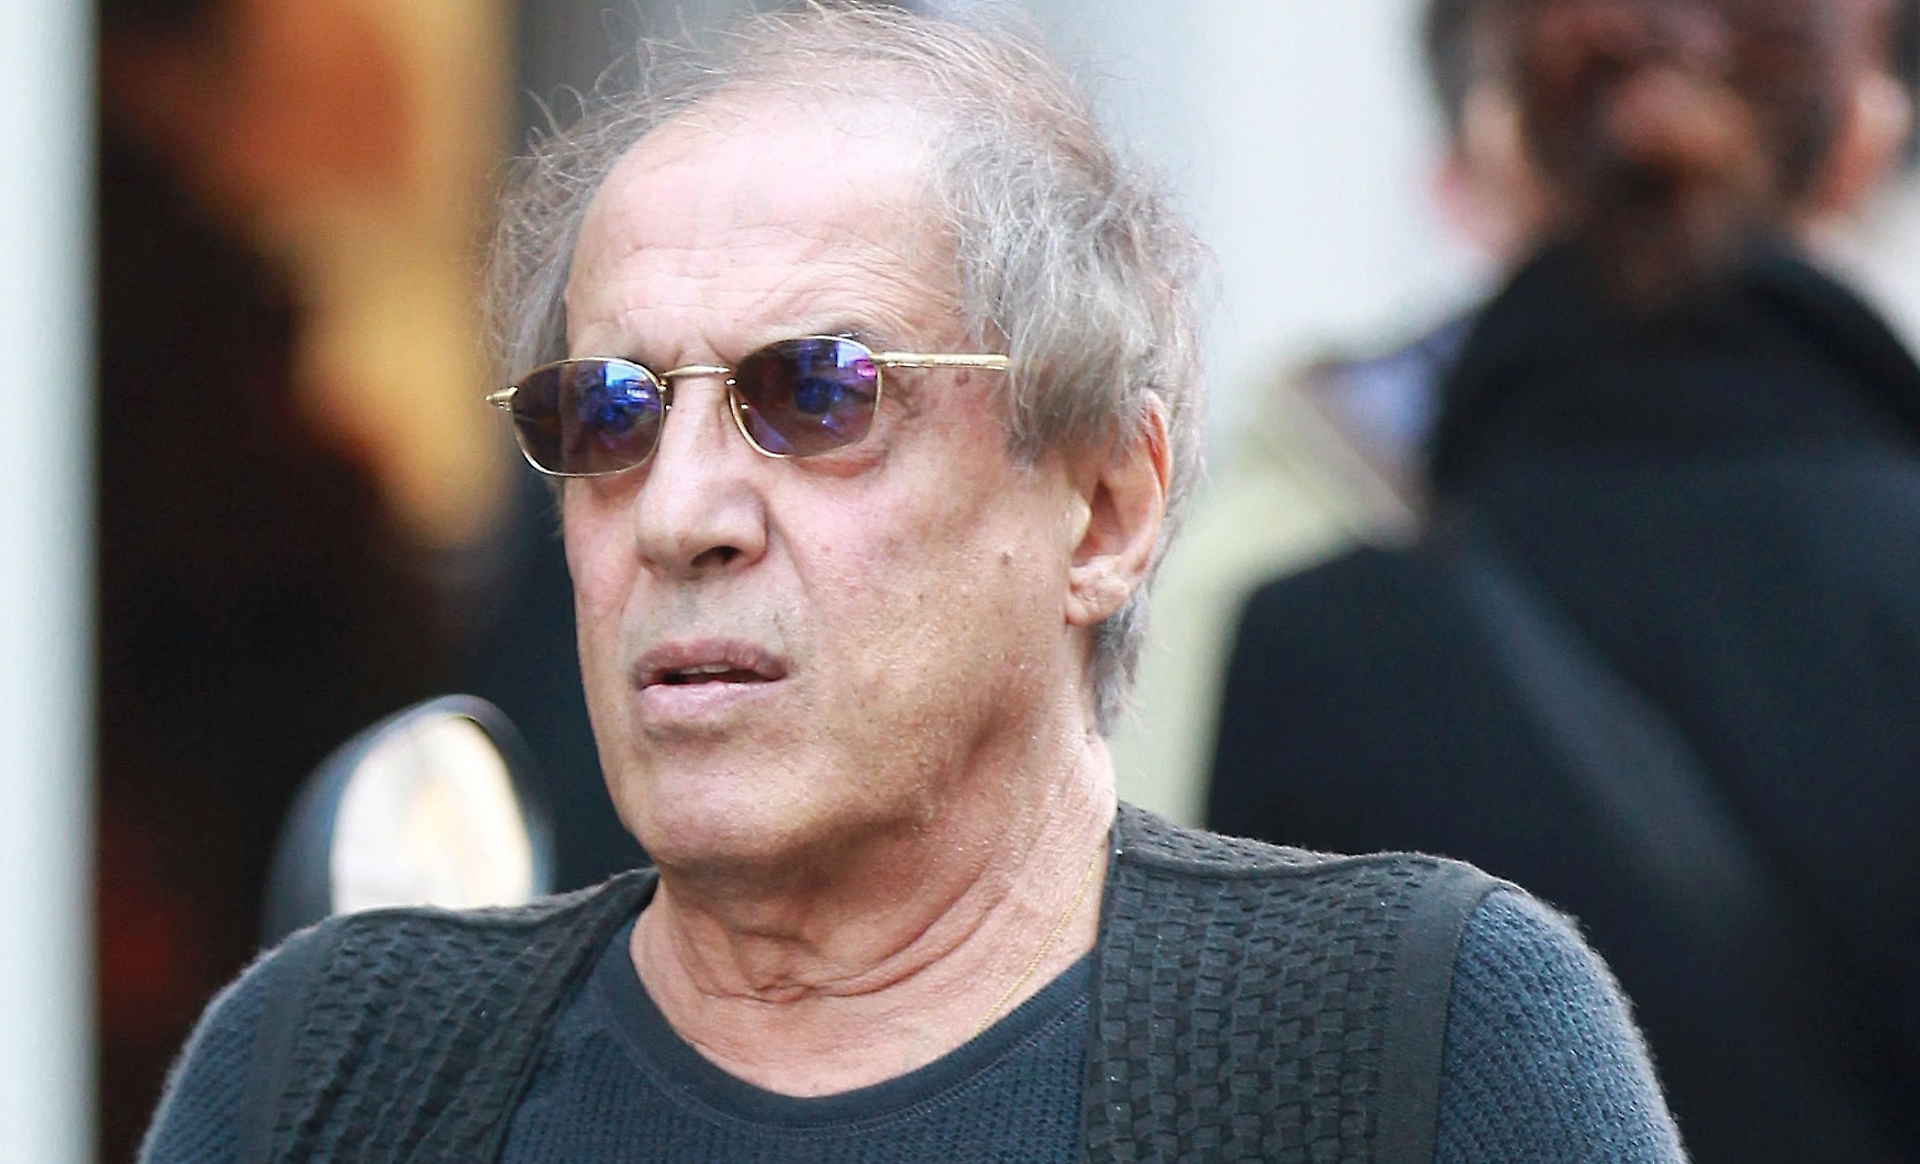 Adriano Celentano Wallpapers Images Photos Pictures Backgrounds